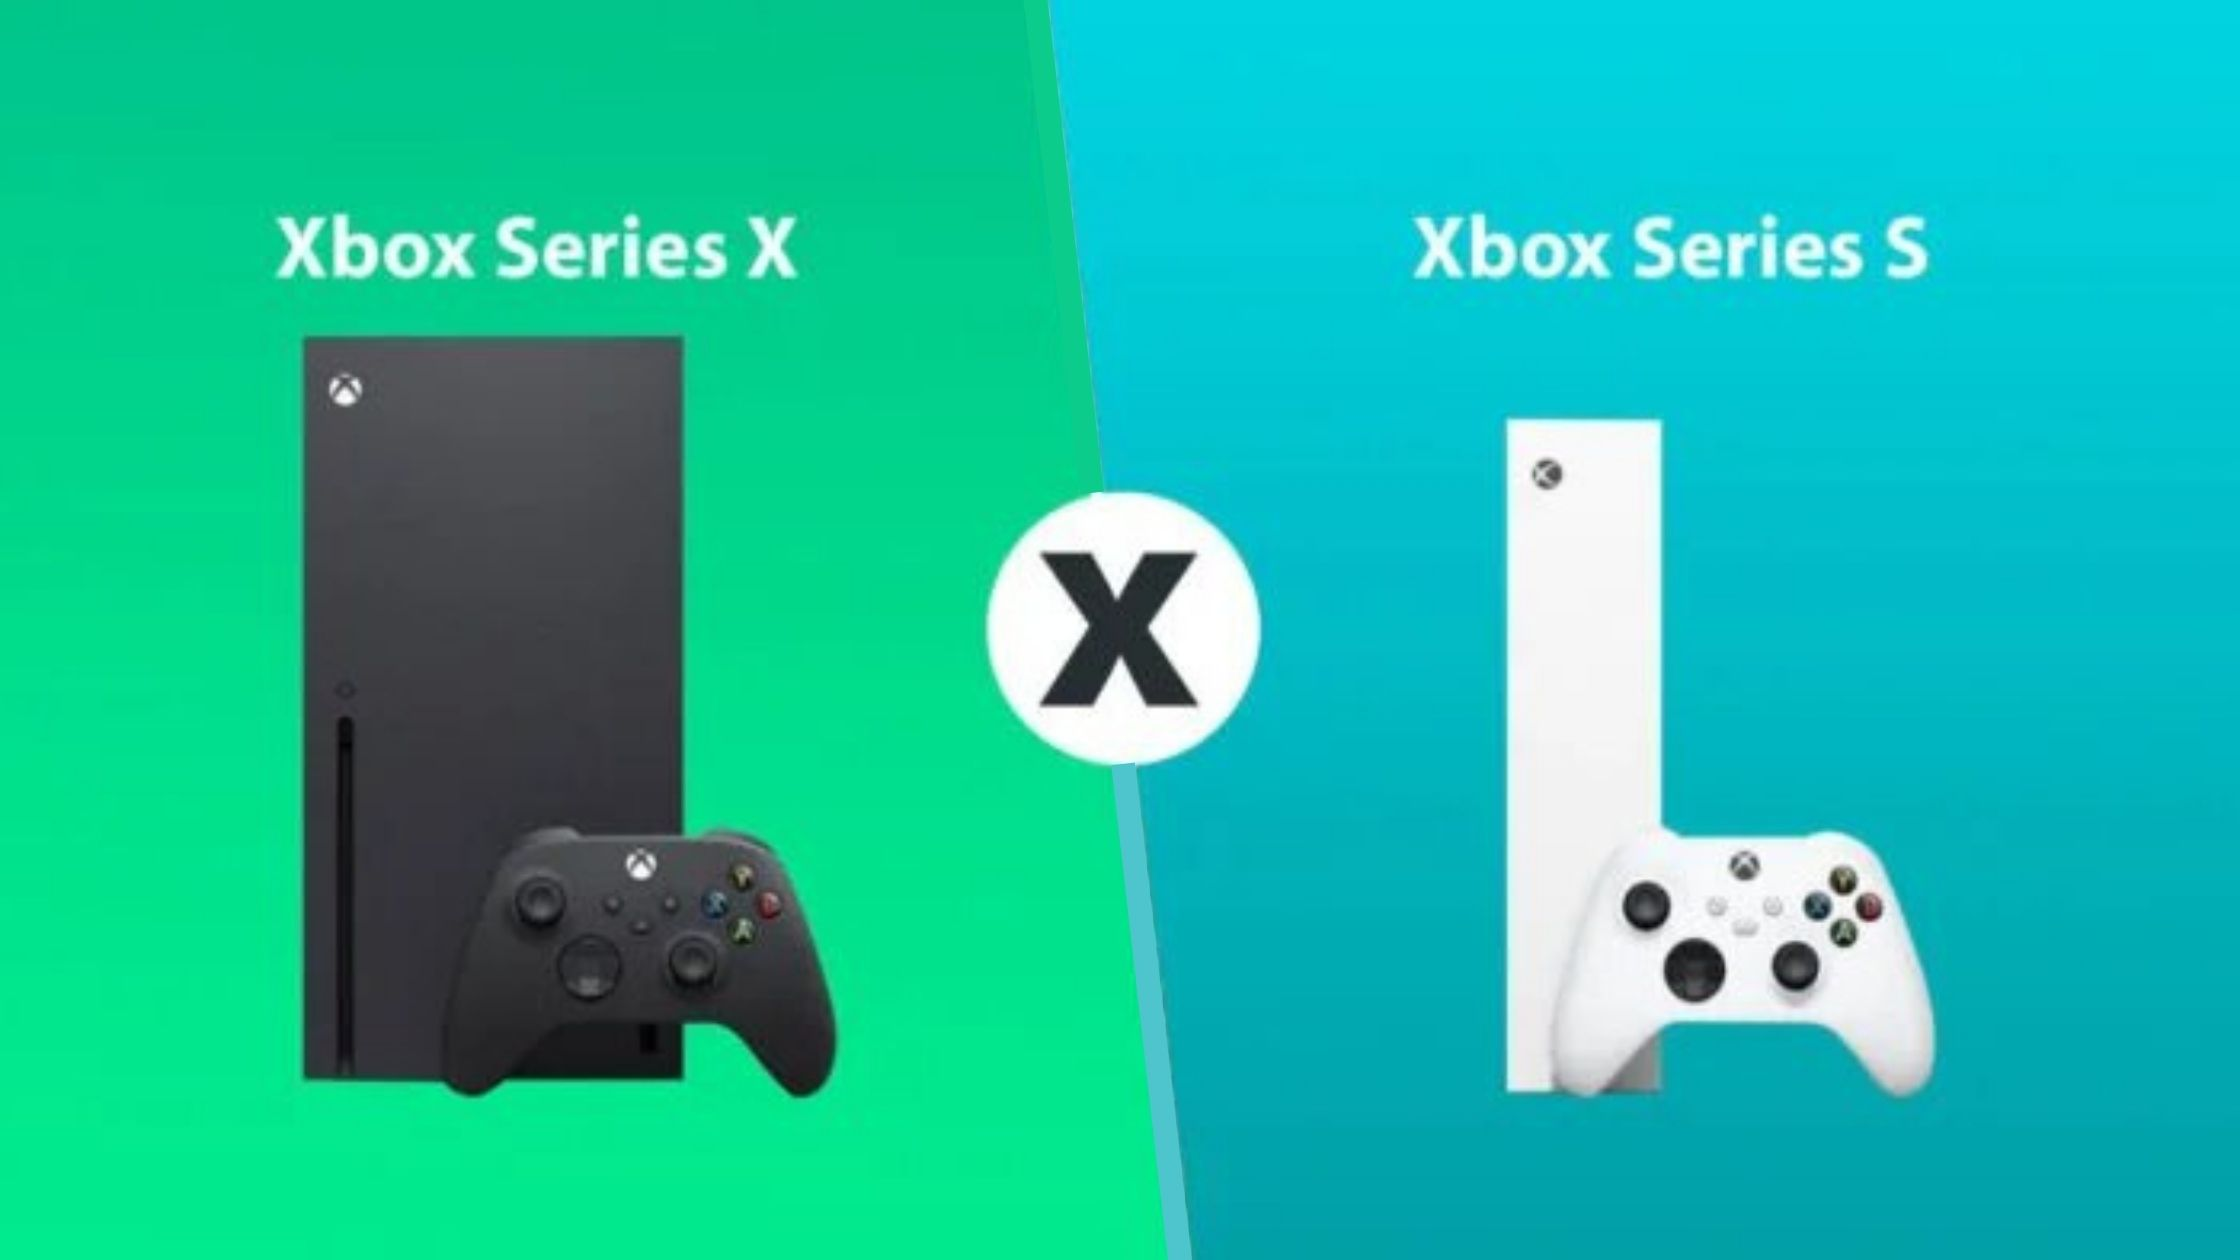 Comparison: Xbox Series X or Xbox Series S